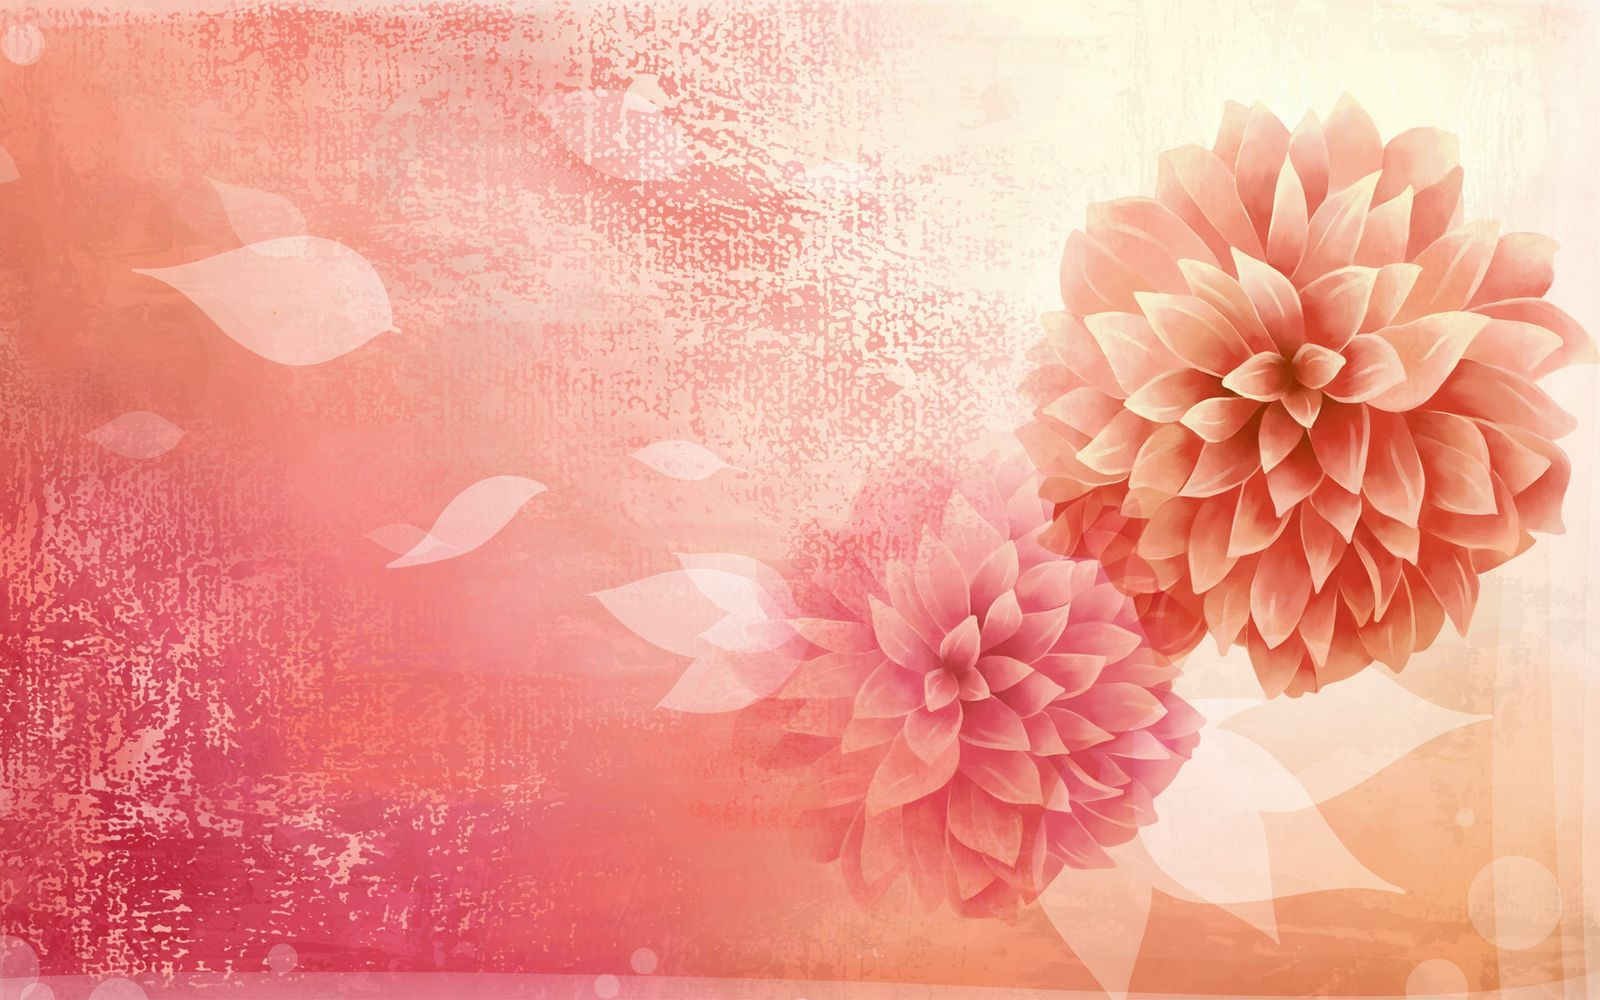 art flowers background wallpaper - photo #24